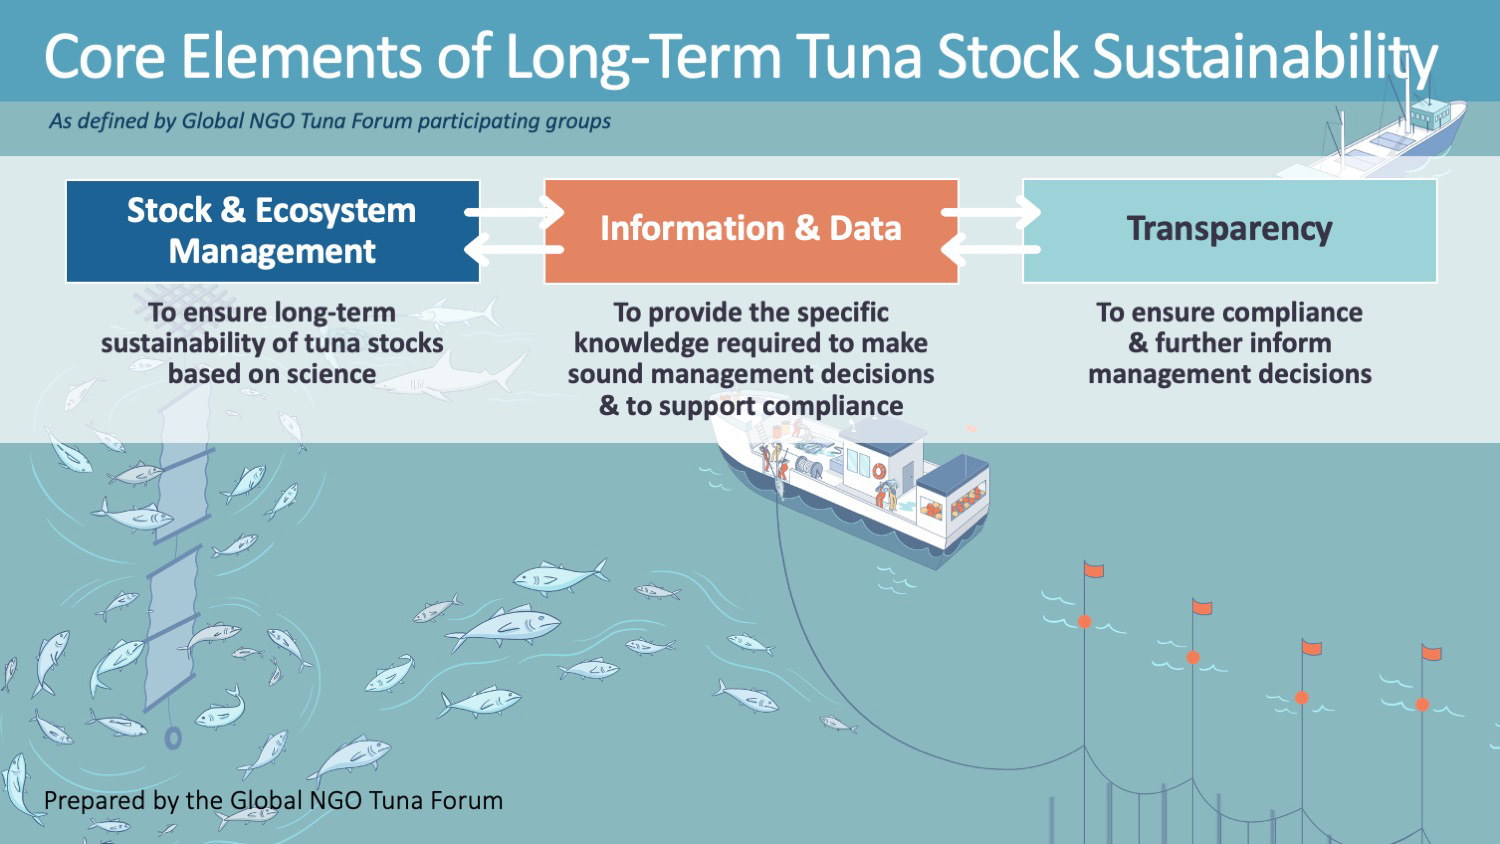 Core Elements of Long Term Tuna Stock Sustainability